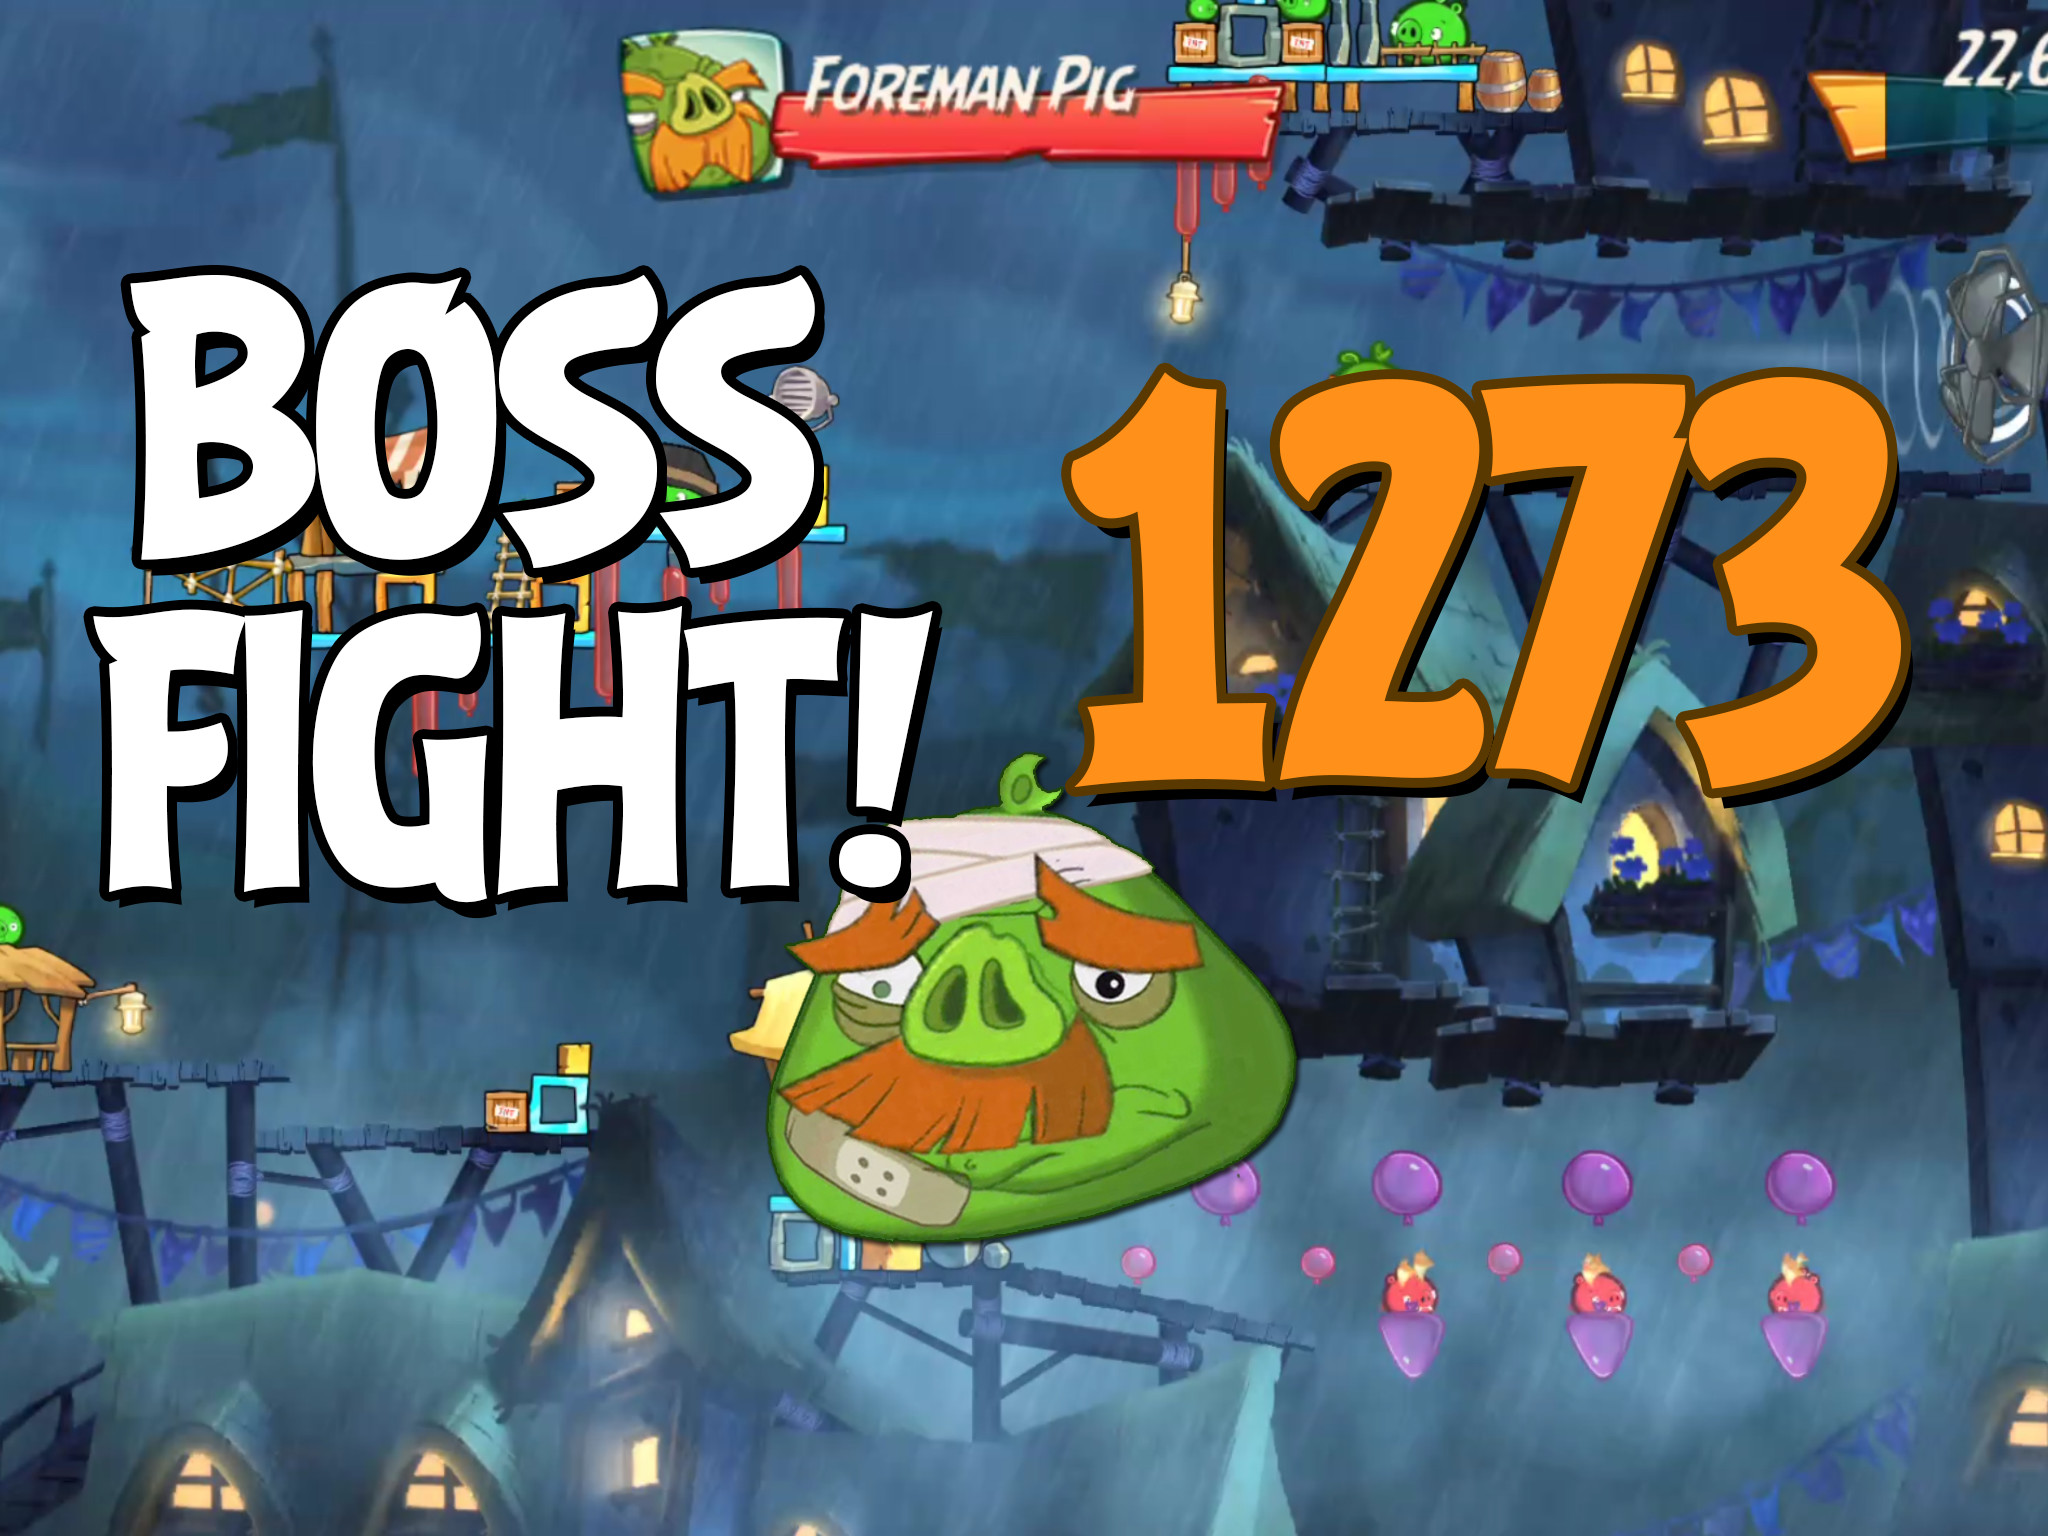 Angry Birds 2 Boss Fight Level 1273